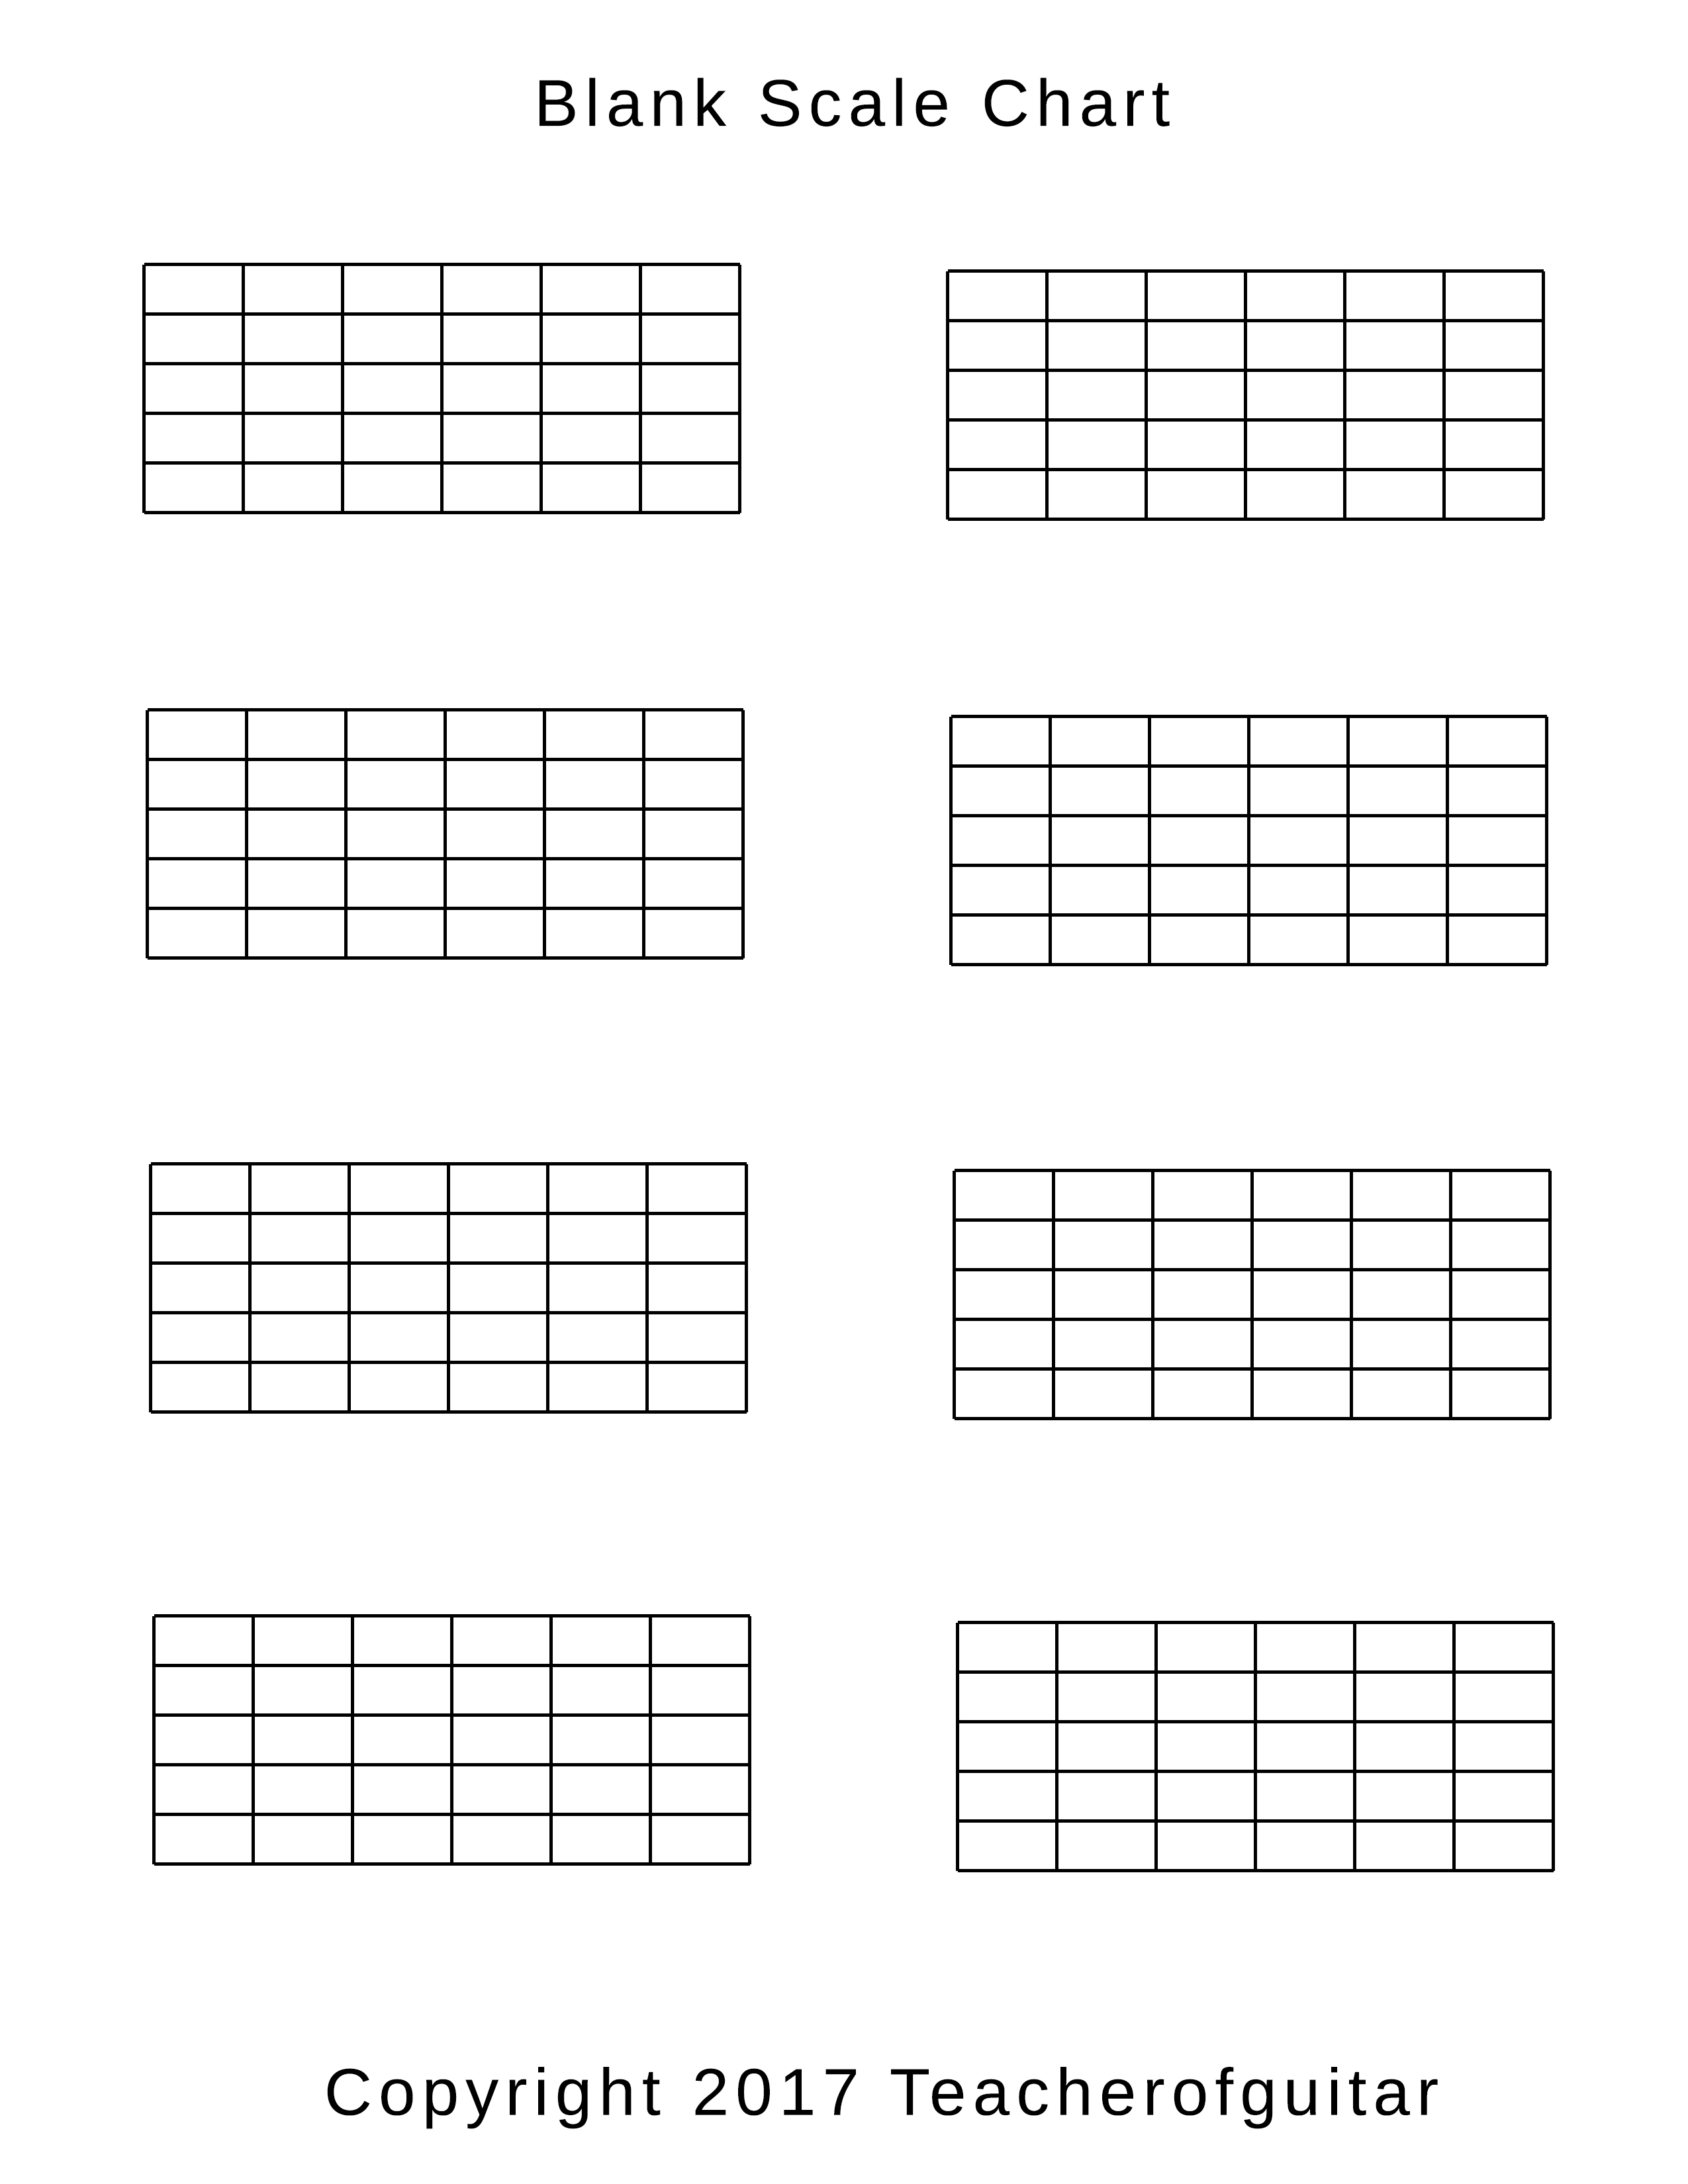 Blank Scale Chart - The Power of Music